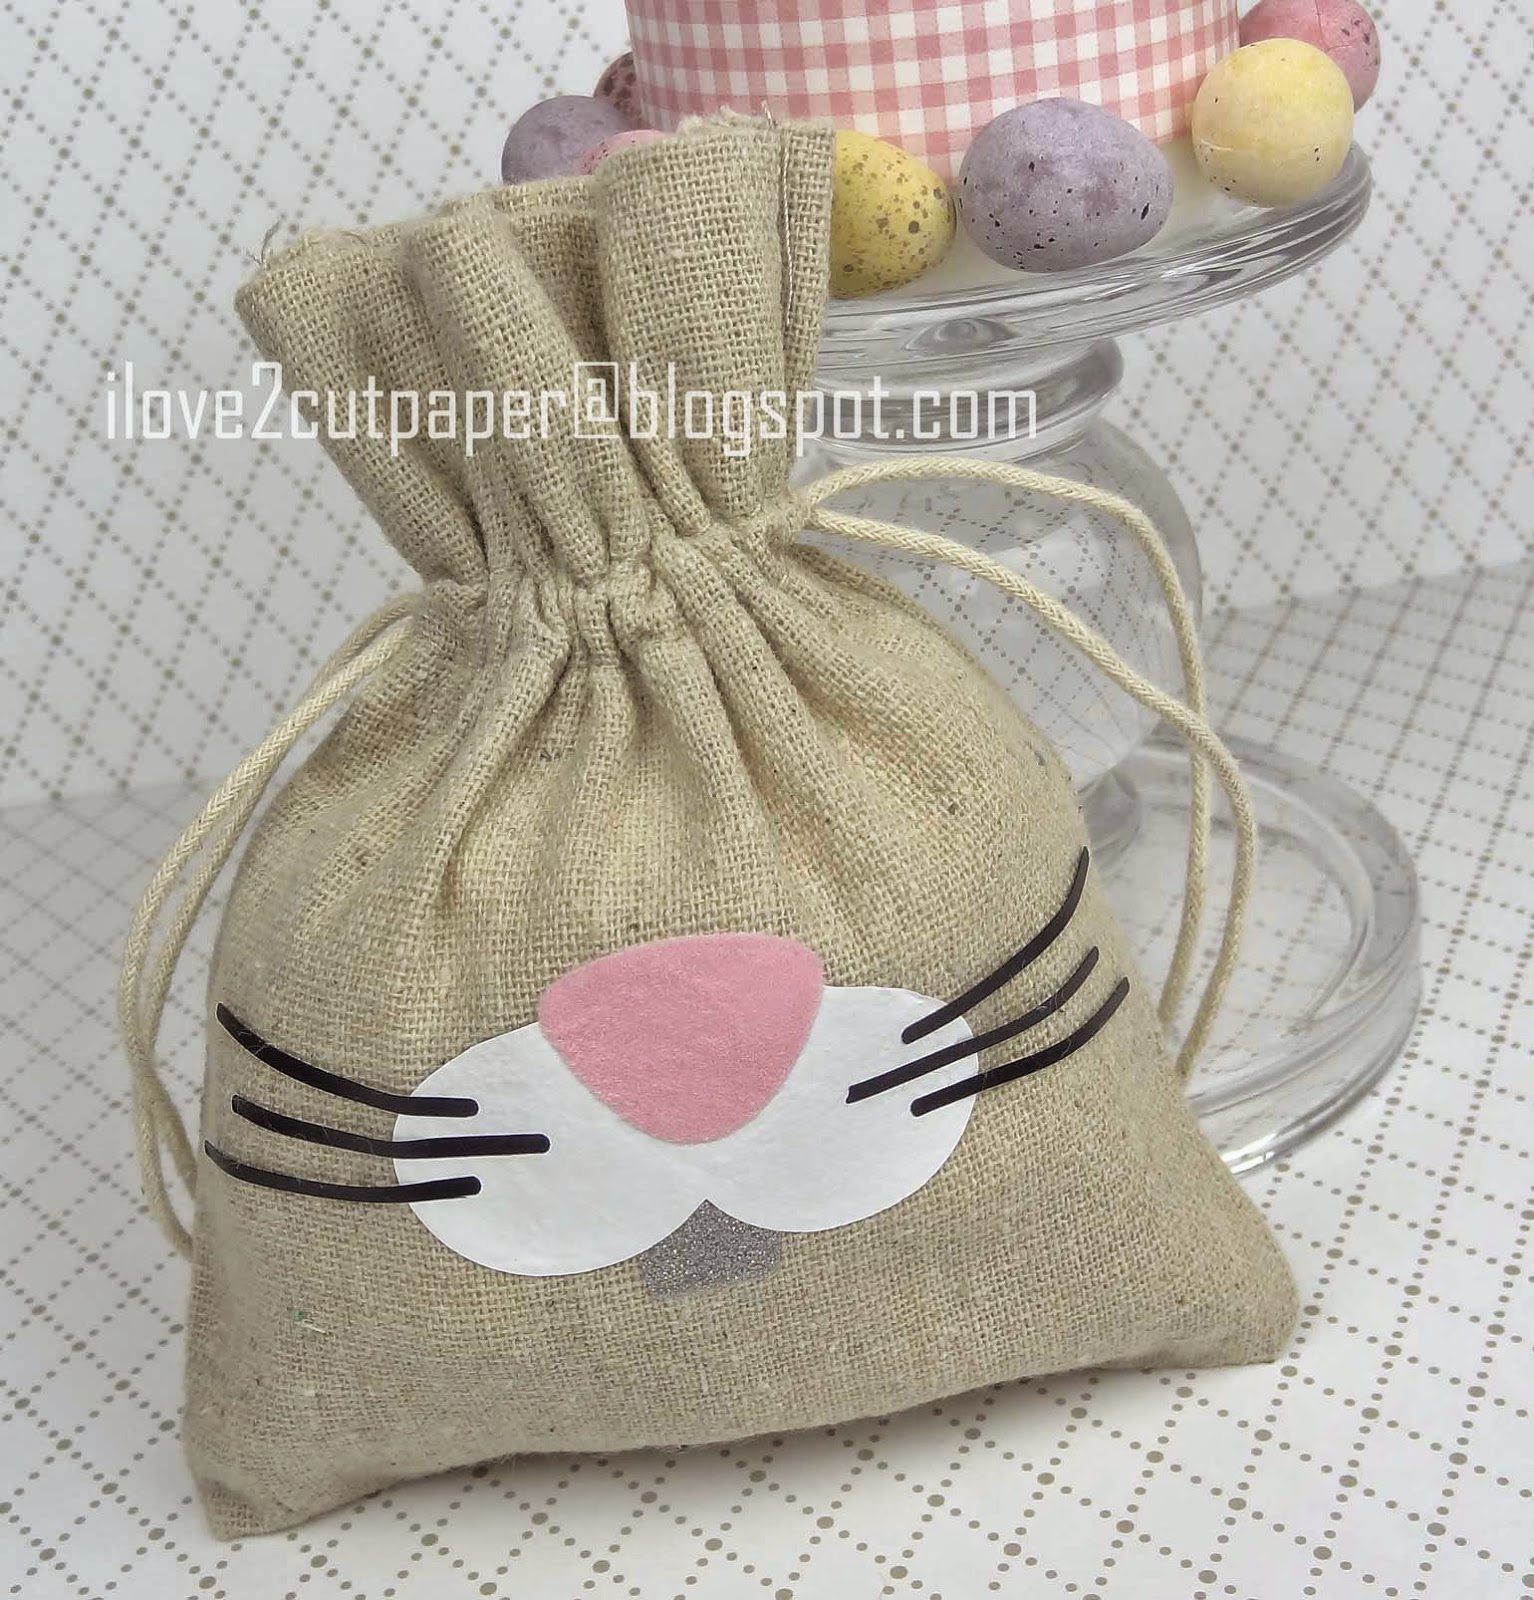 Bunny, Easter, Heat Transfer, Pazzles, Lettering Delights,